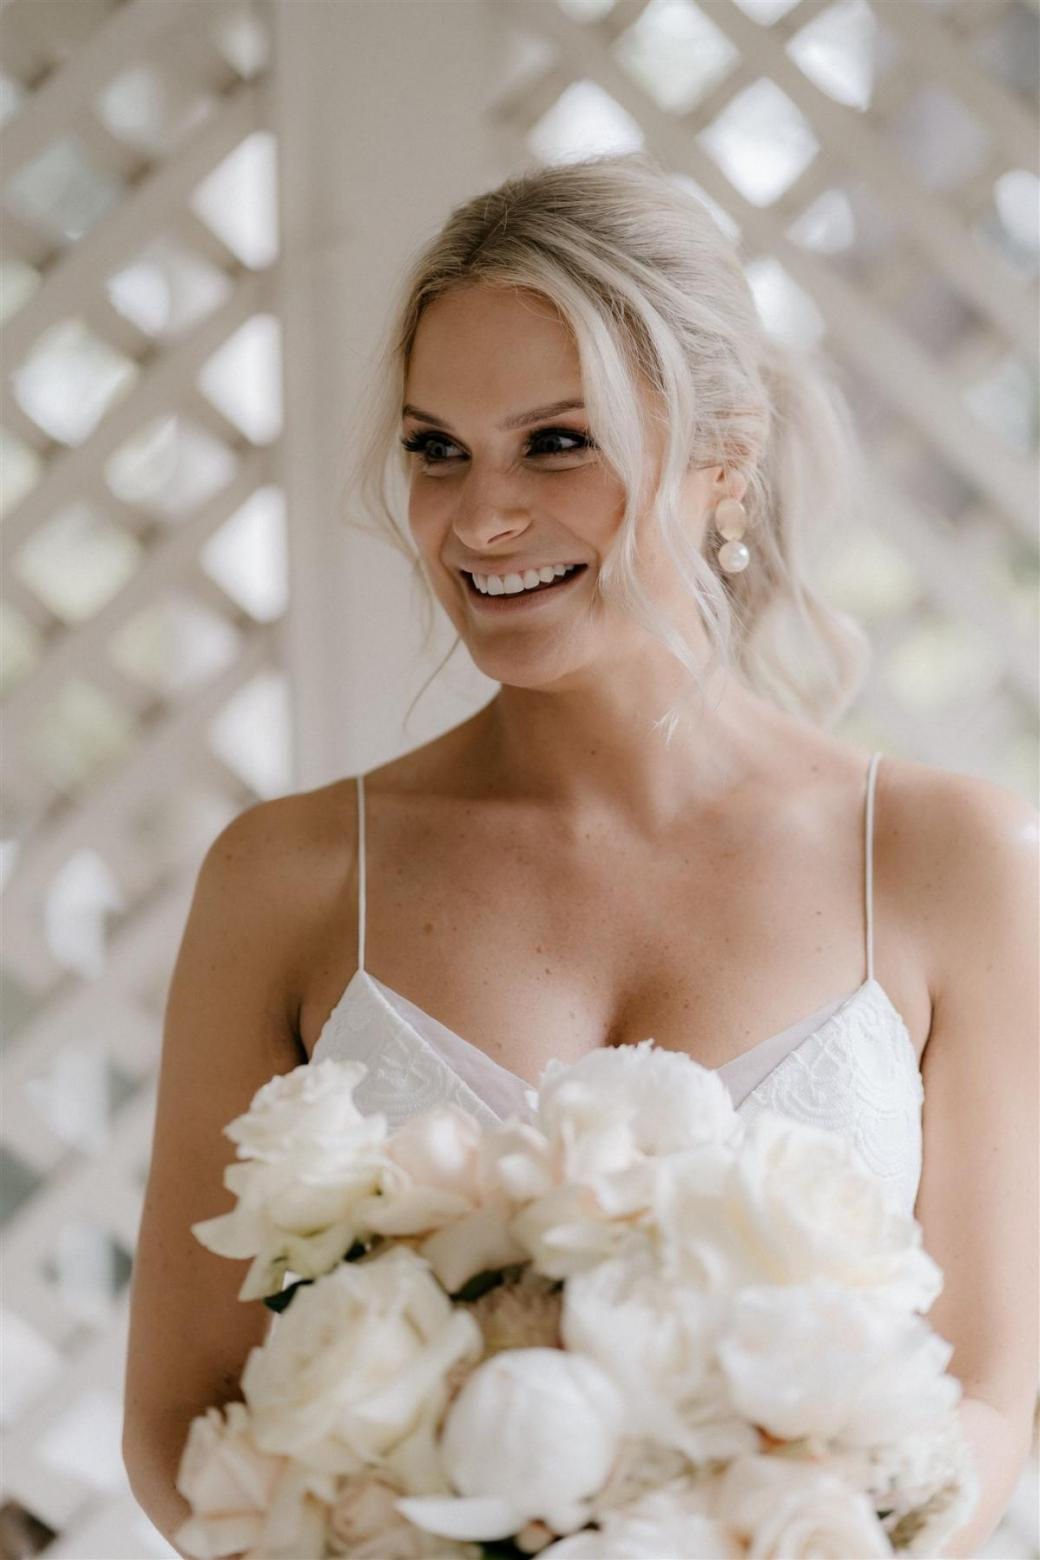 KWH bride Ashleigh smiling at her real wedding; wearing the lace Elodie gown with modesty panels for coverage.